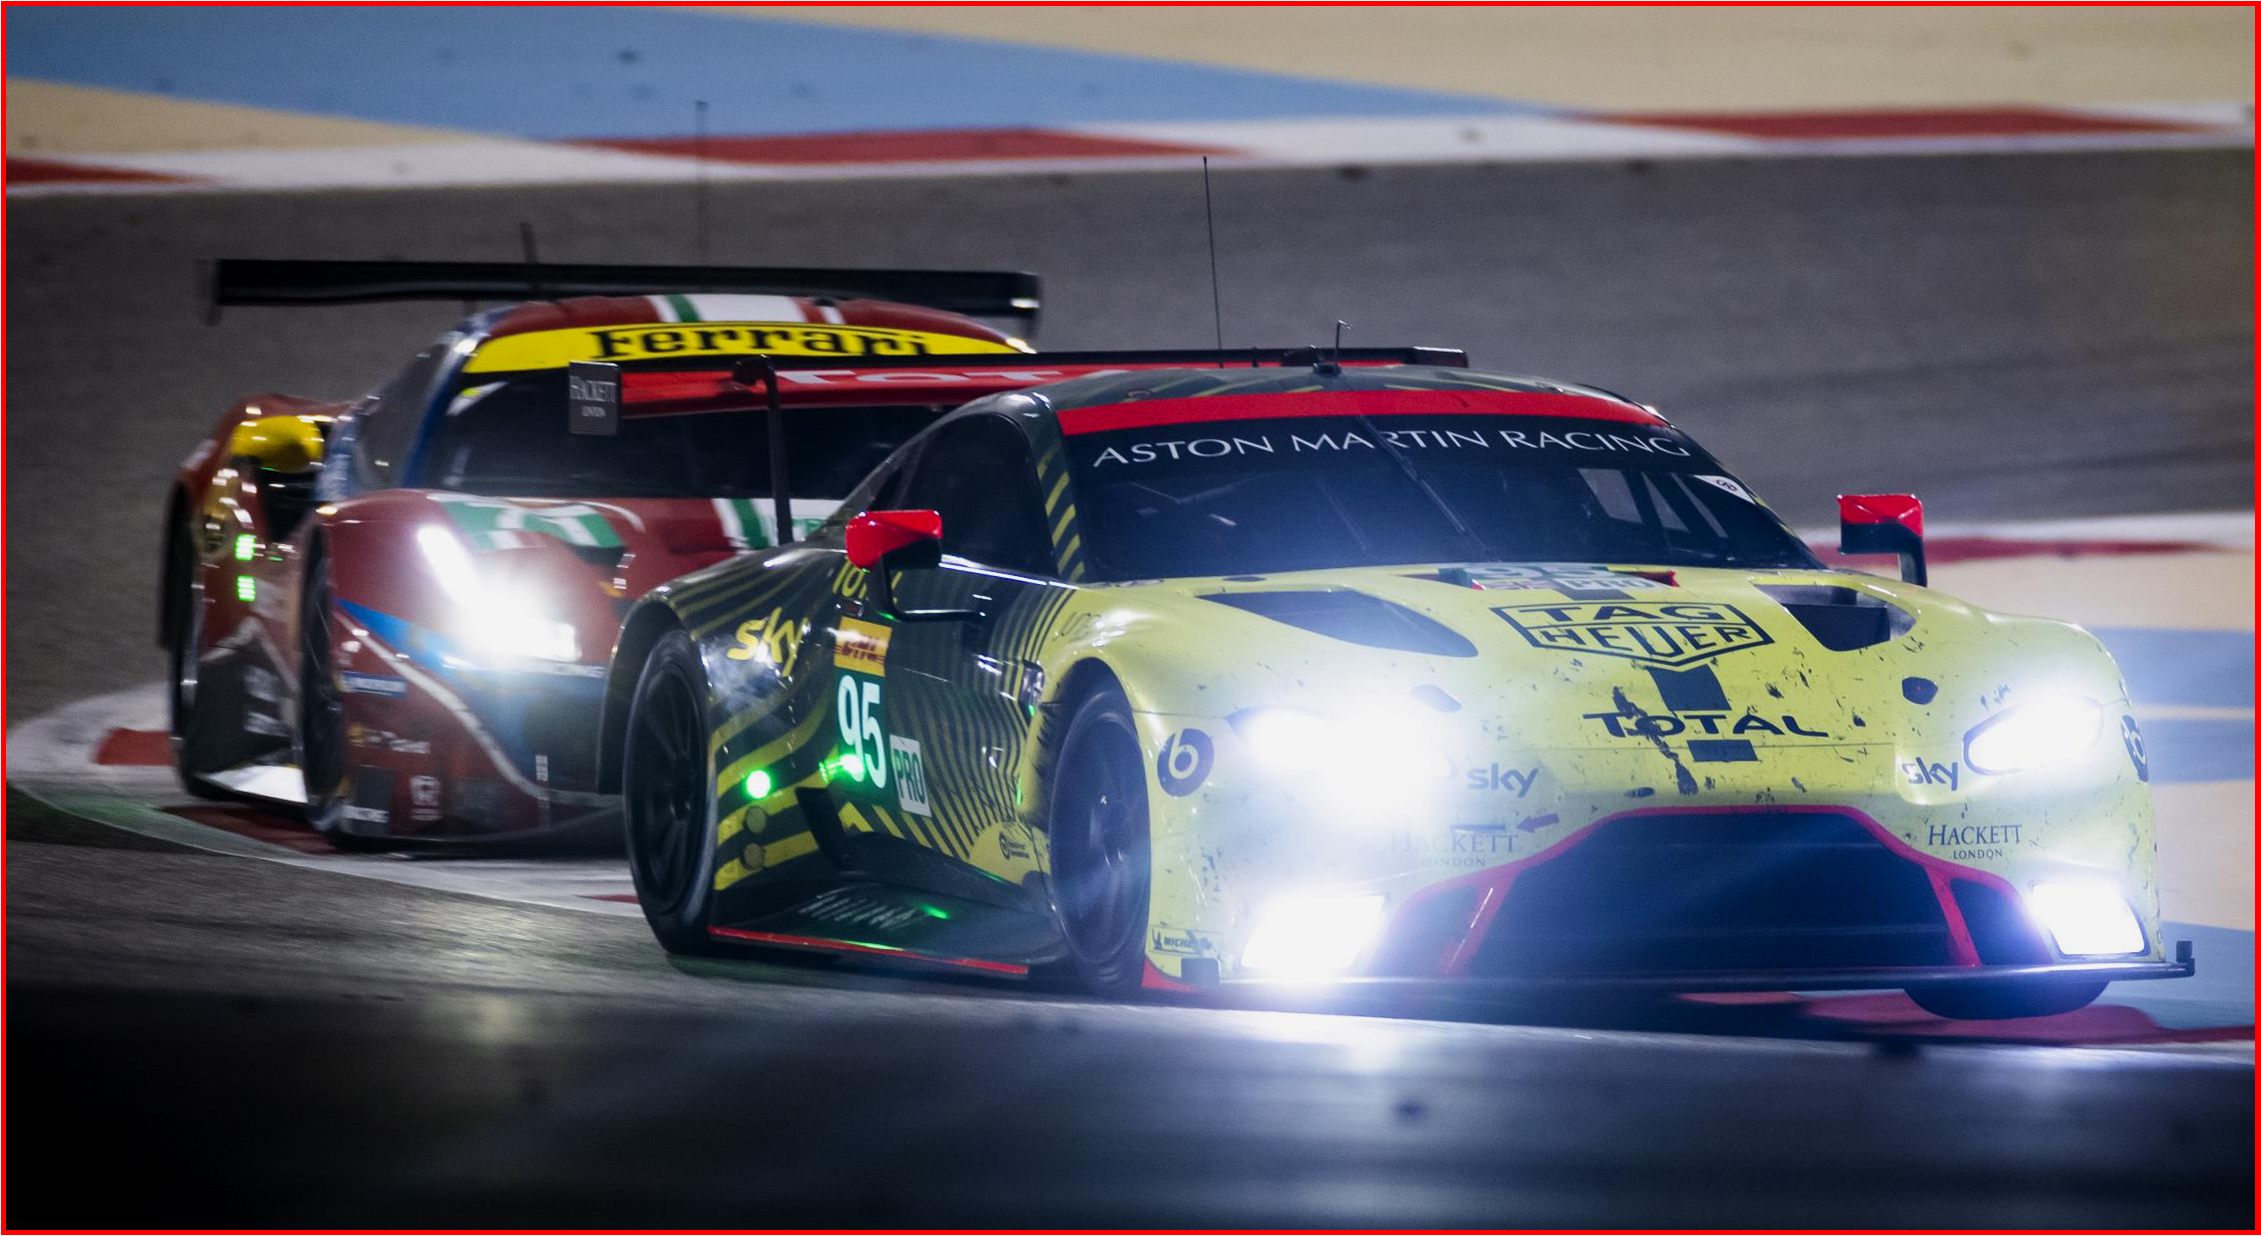 AutoInformed.com on WEC 2019-20 Race 4 Bahrain - Aston Martin Beats Ferrari